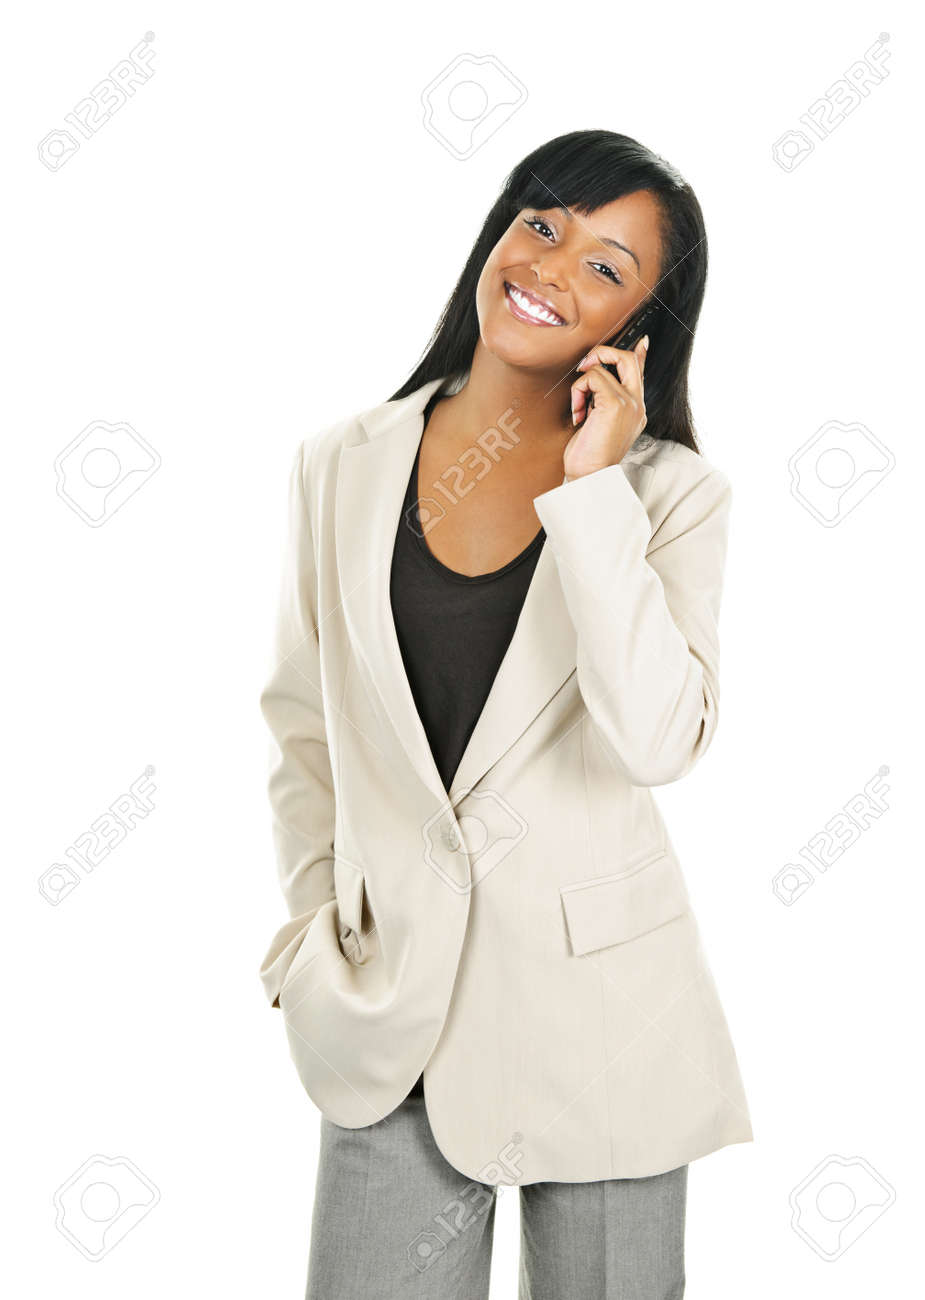 Young smiling black businesswoman on cell phone isolated on white background Stock Photo - 9240553